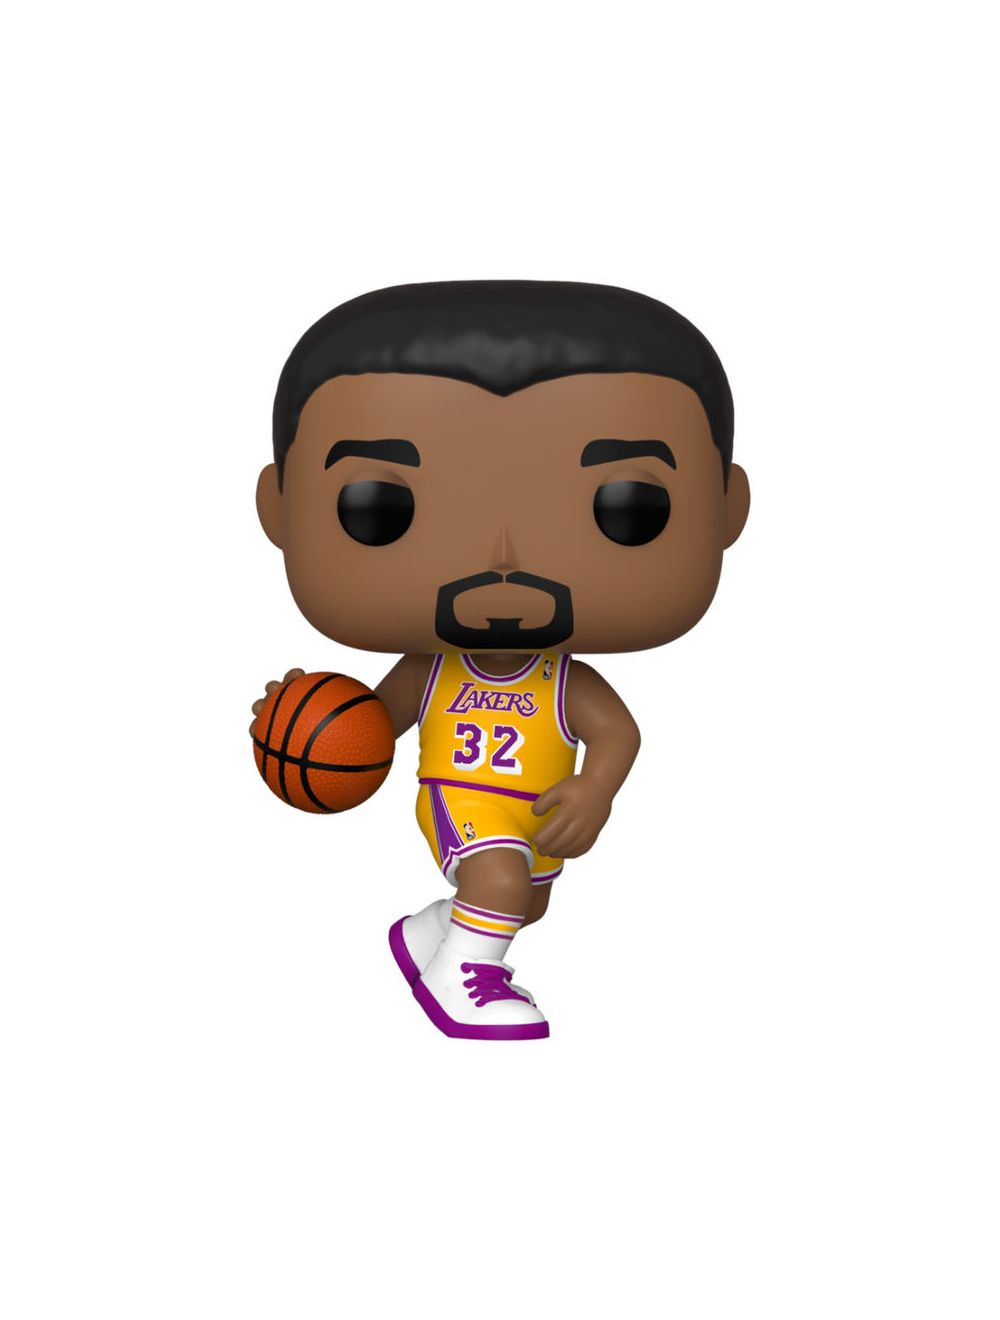 Funko POP! NBA Legends - Magic Johnson (Lakers home) Vinyl figura 10cm